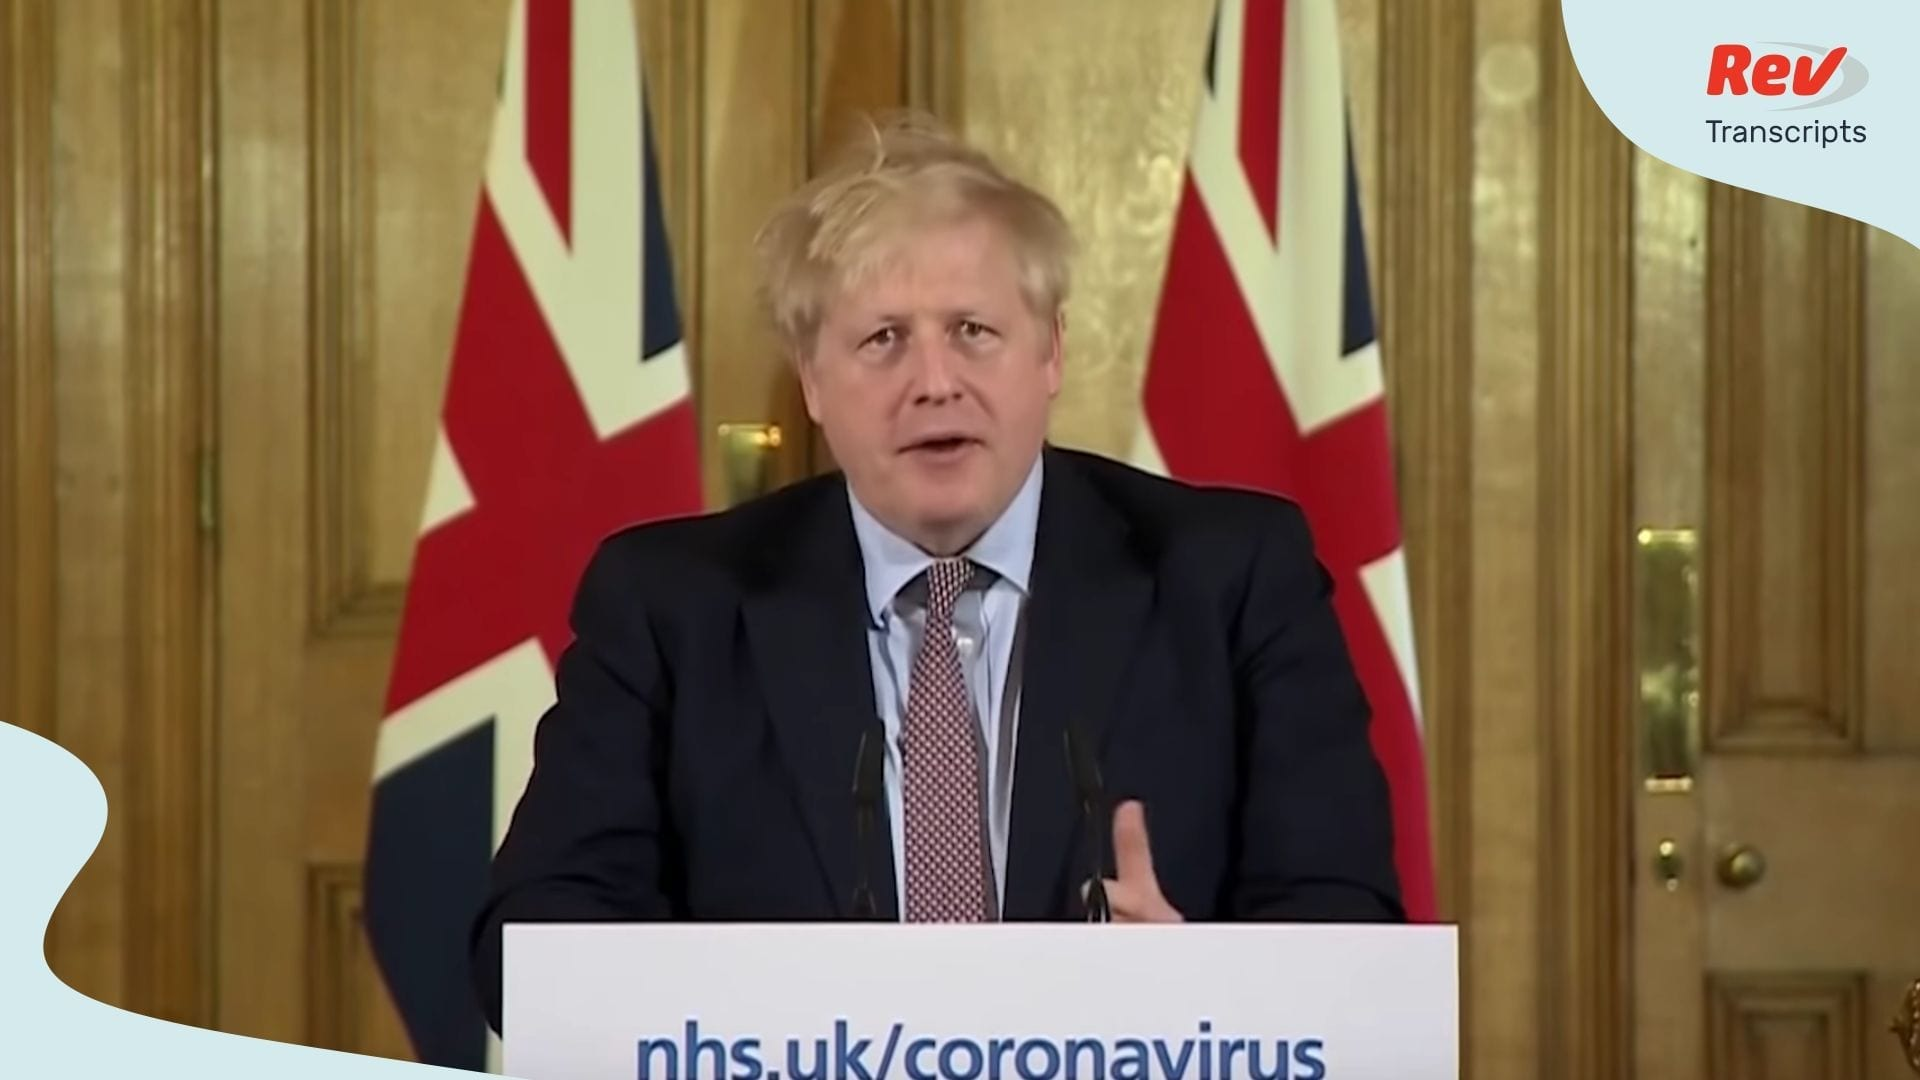 Boris Johnson Coronavirus Speech Transcript